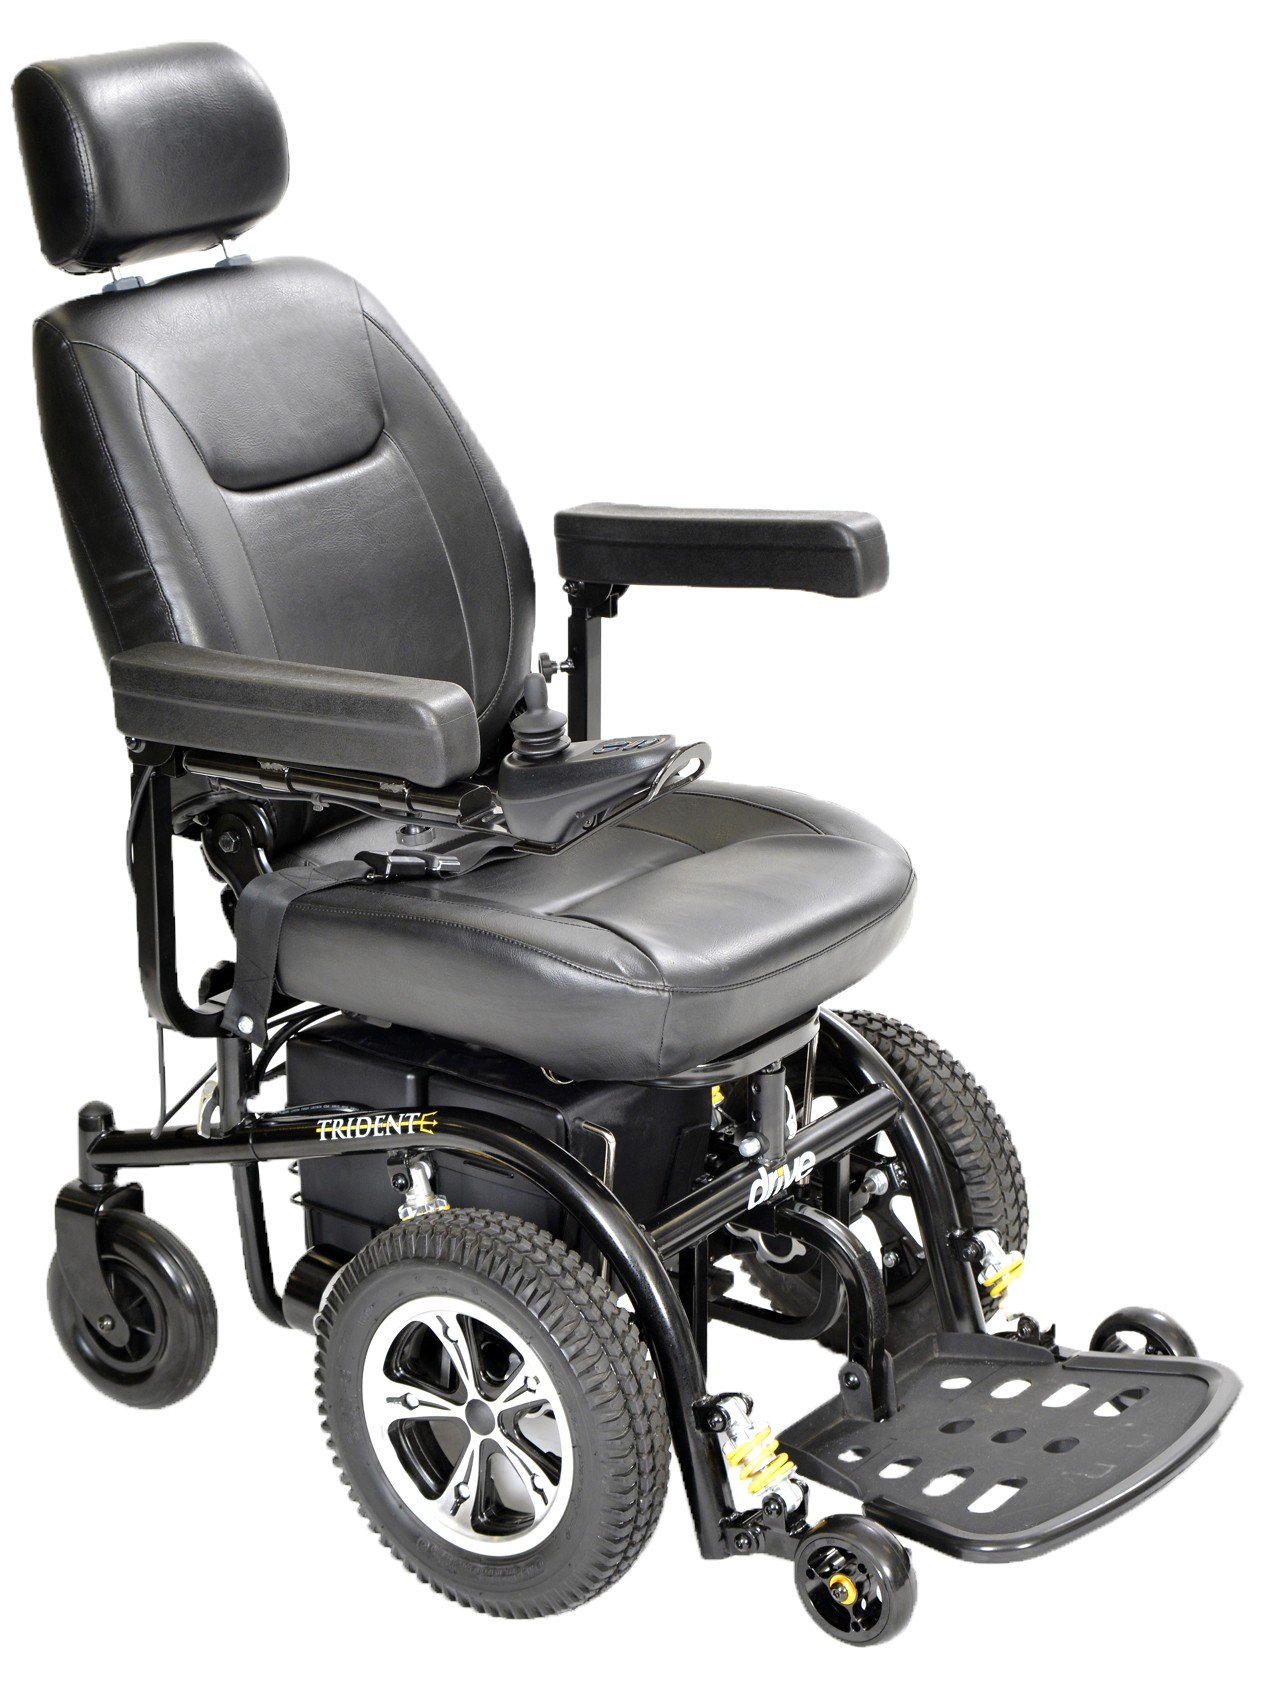 Mobility scooter repair company in central florida for Mobility chair